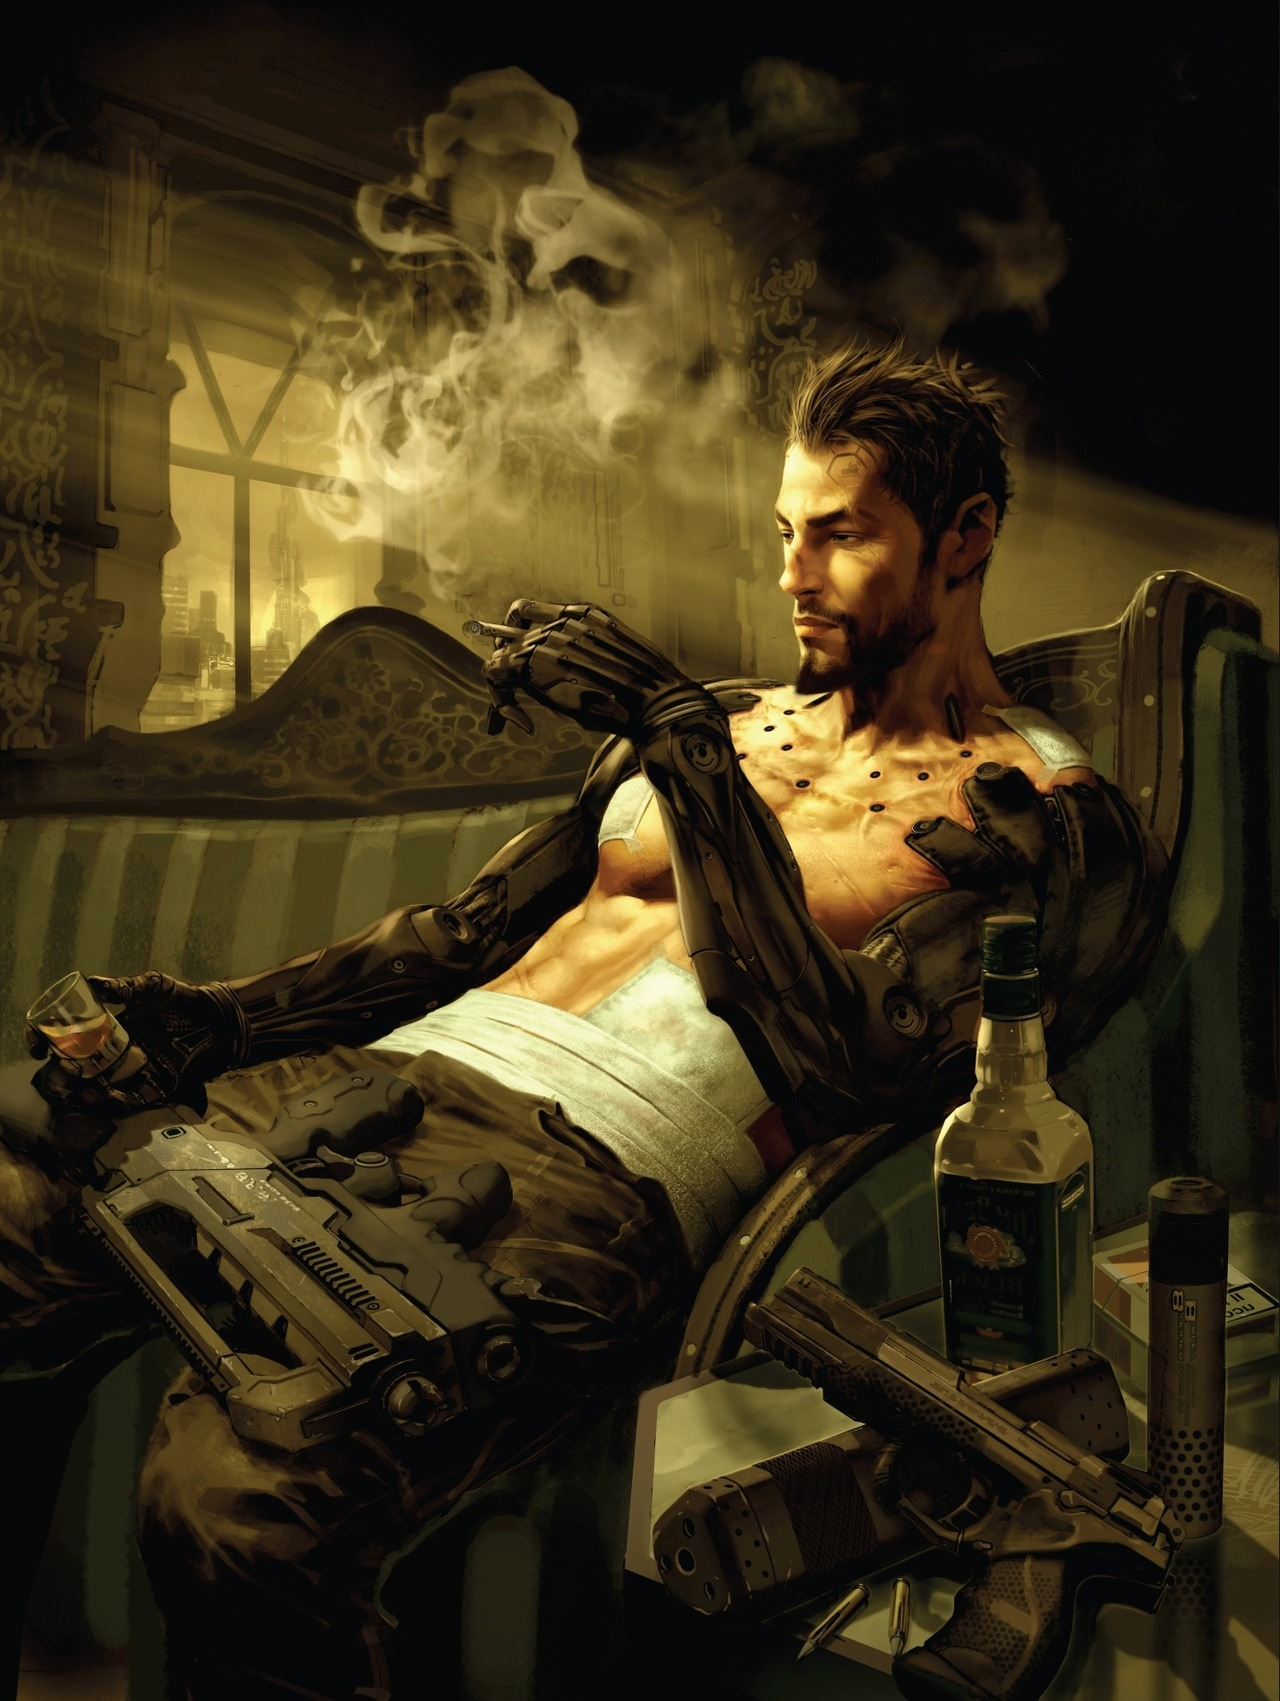 gamefreaksnz:  Deus Ex series discounted on Steam this weekend  This coming weekend presents a unique window of opportunity for thrifty gamers who want to experience the classic Deus Ex franchise in its entirety.